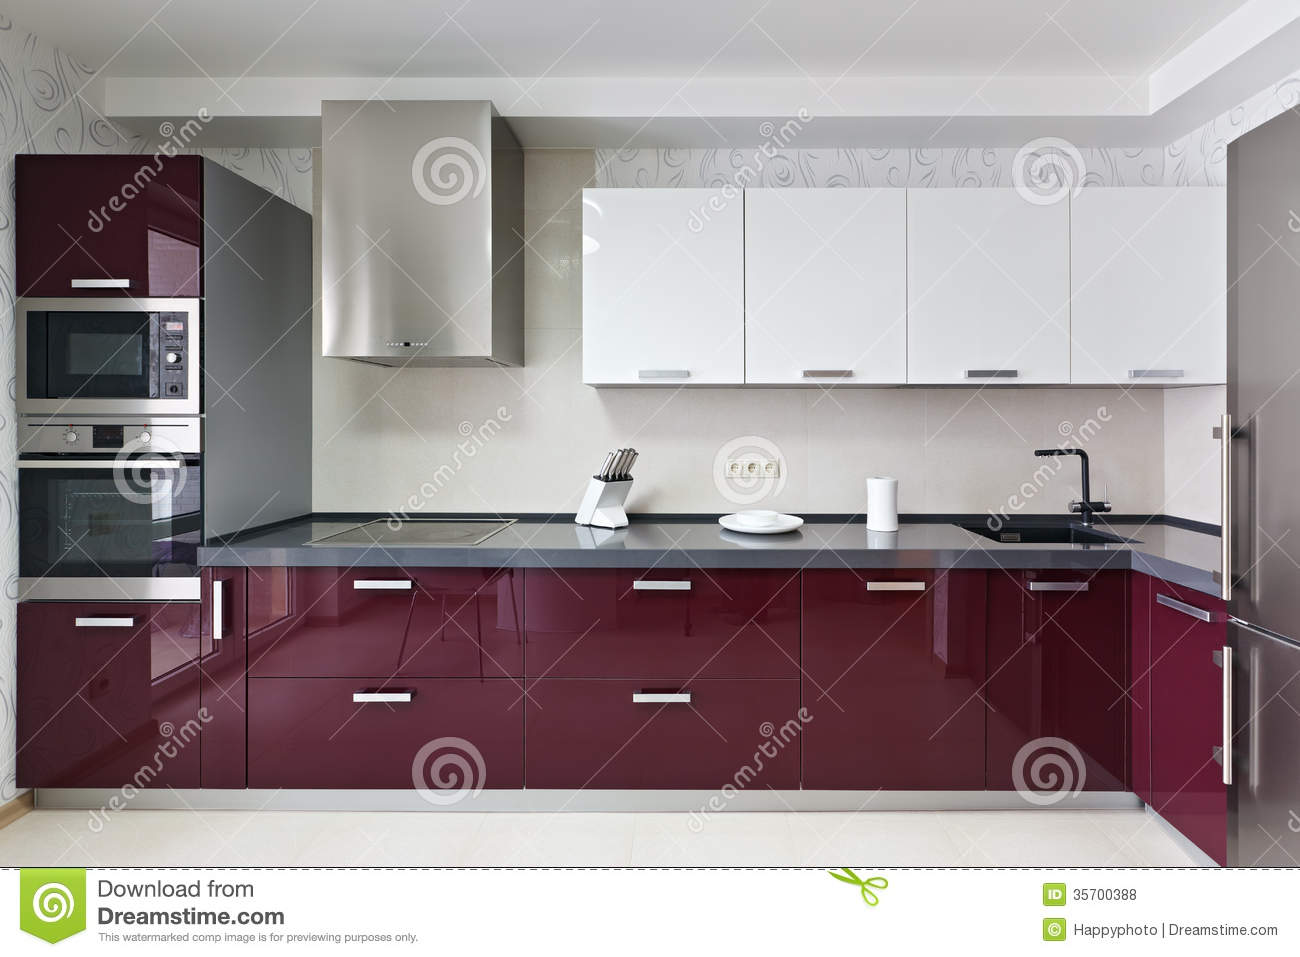 Modern kitchen interior royalty free stock photos image for Modern kitchen interior